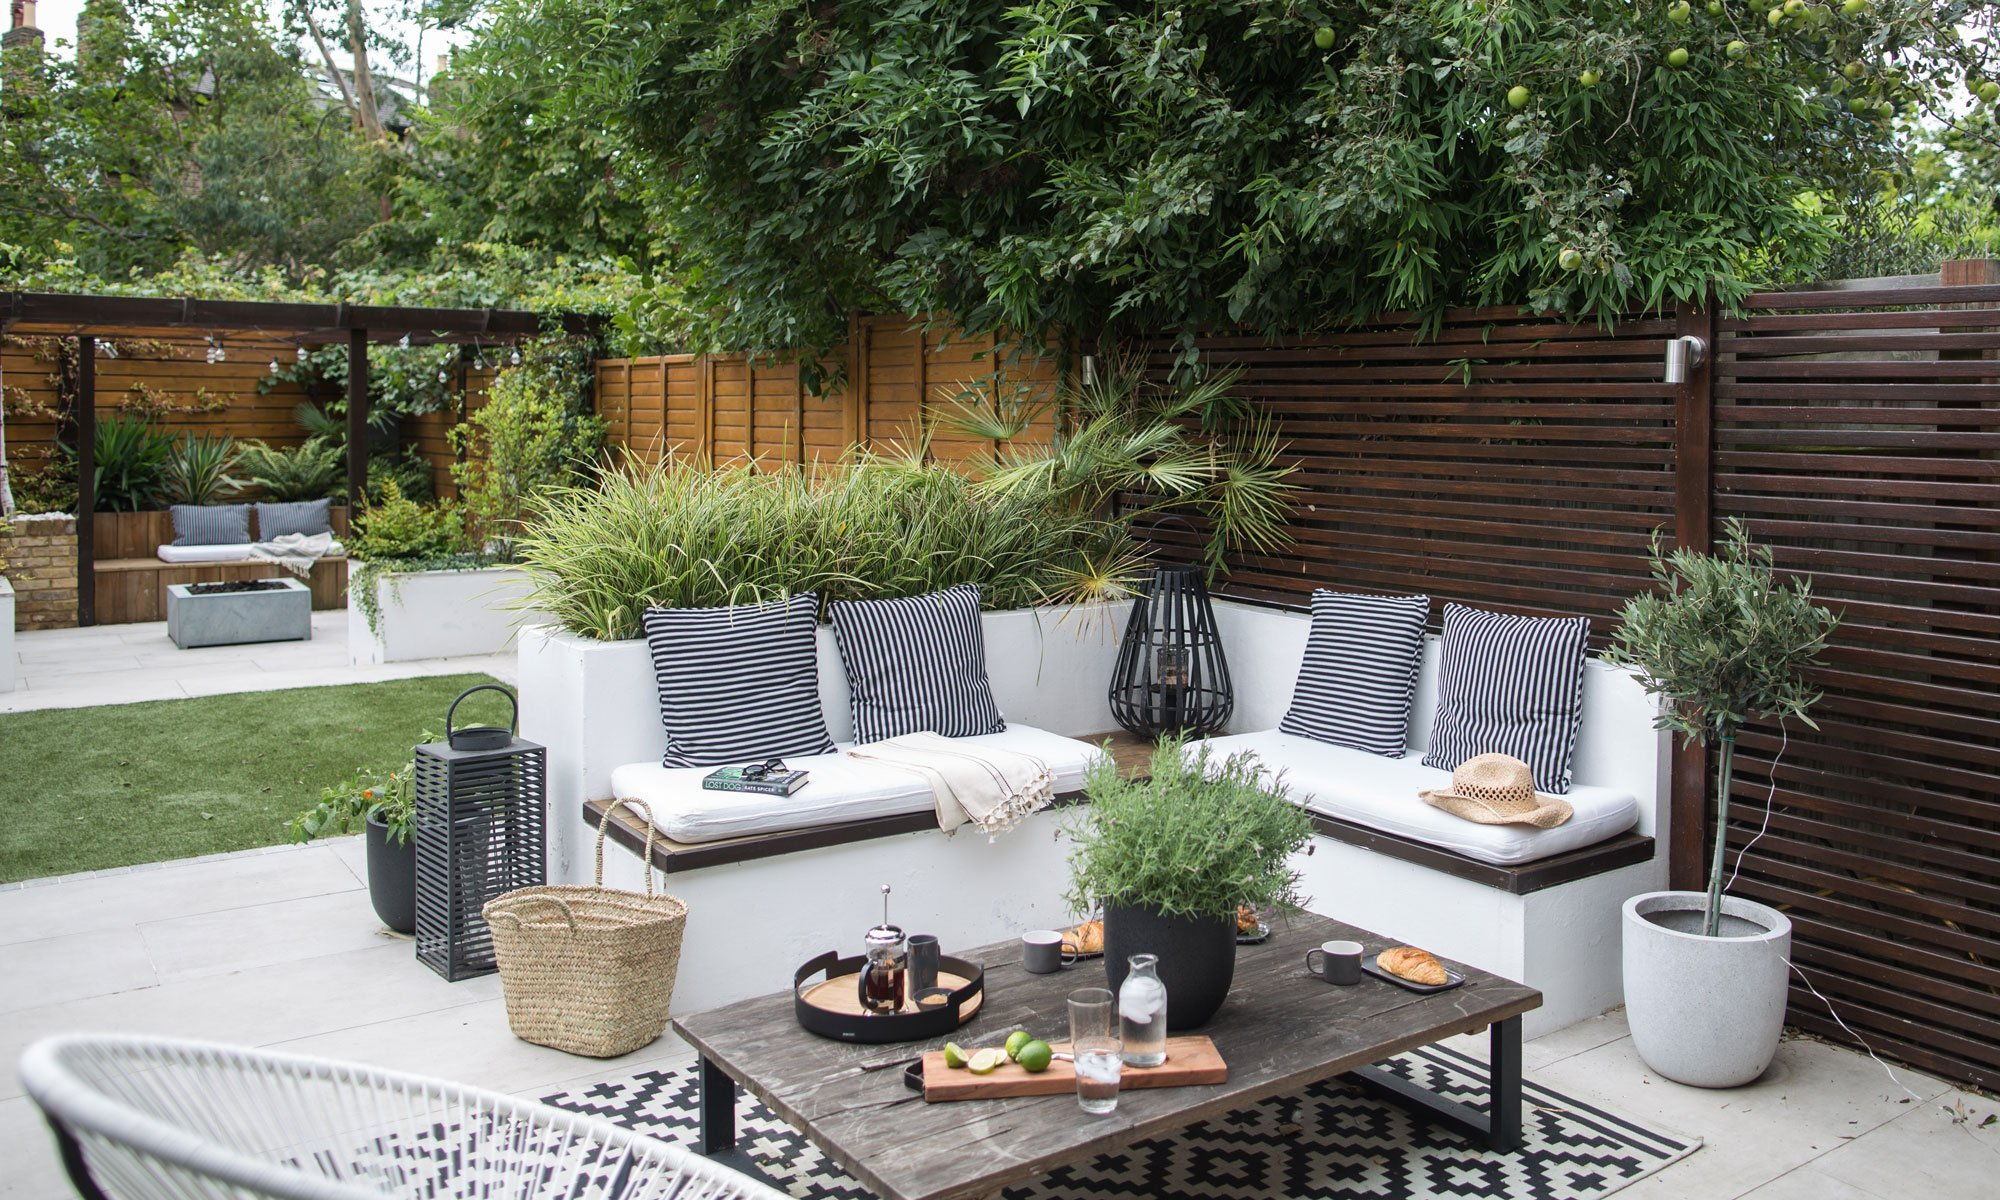 Real life garden makeovers you've got to see